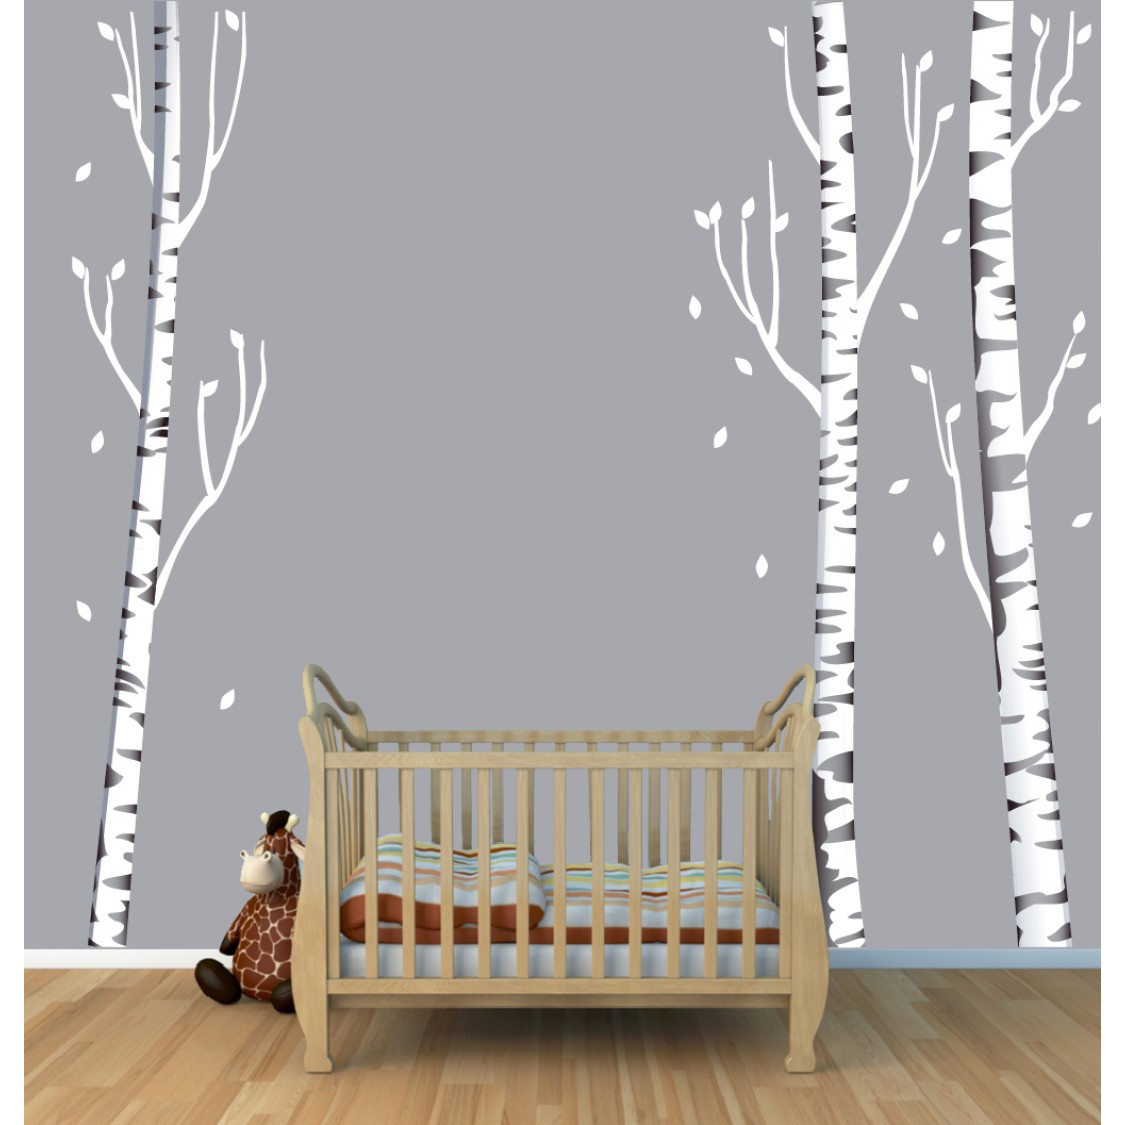 Tree Wall Art With Birch Tree Wall Decals For Kids Rooms Part 20